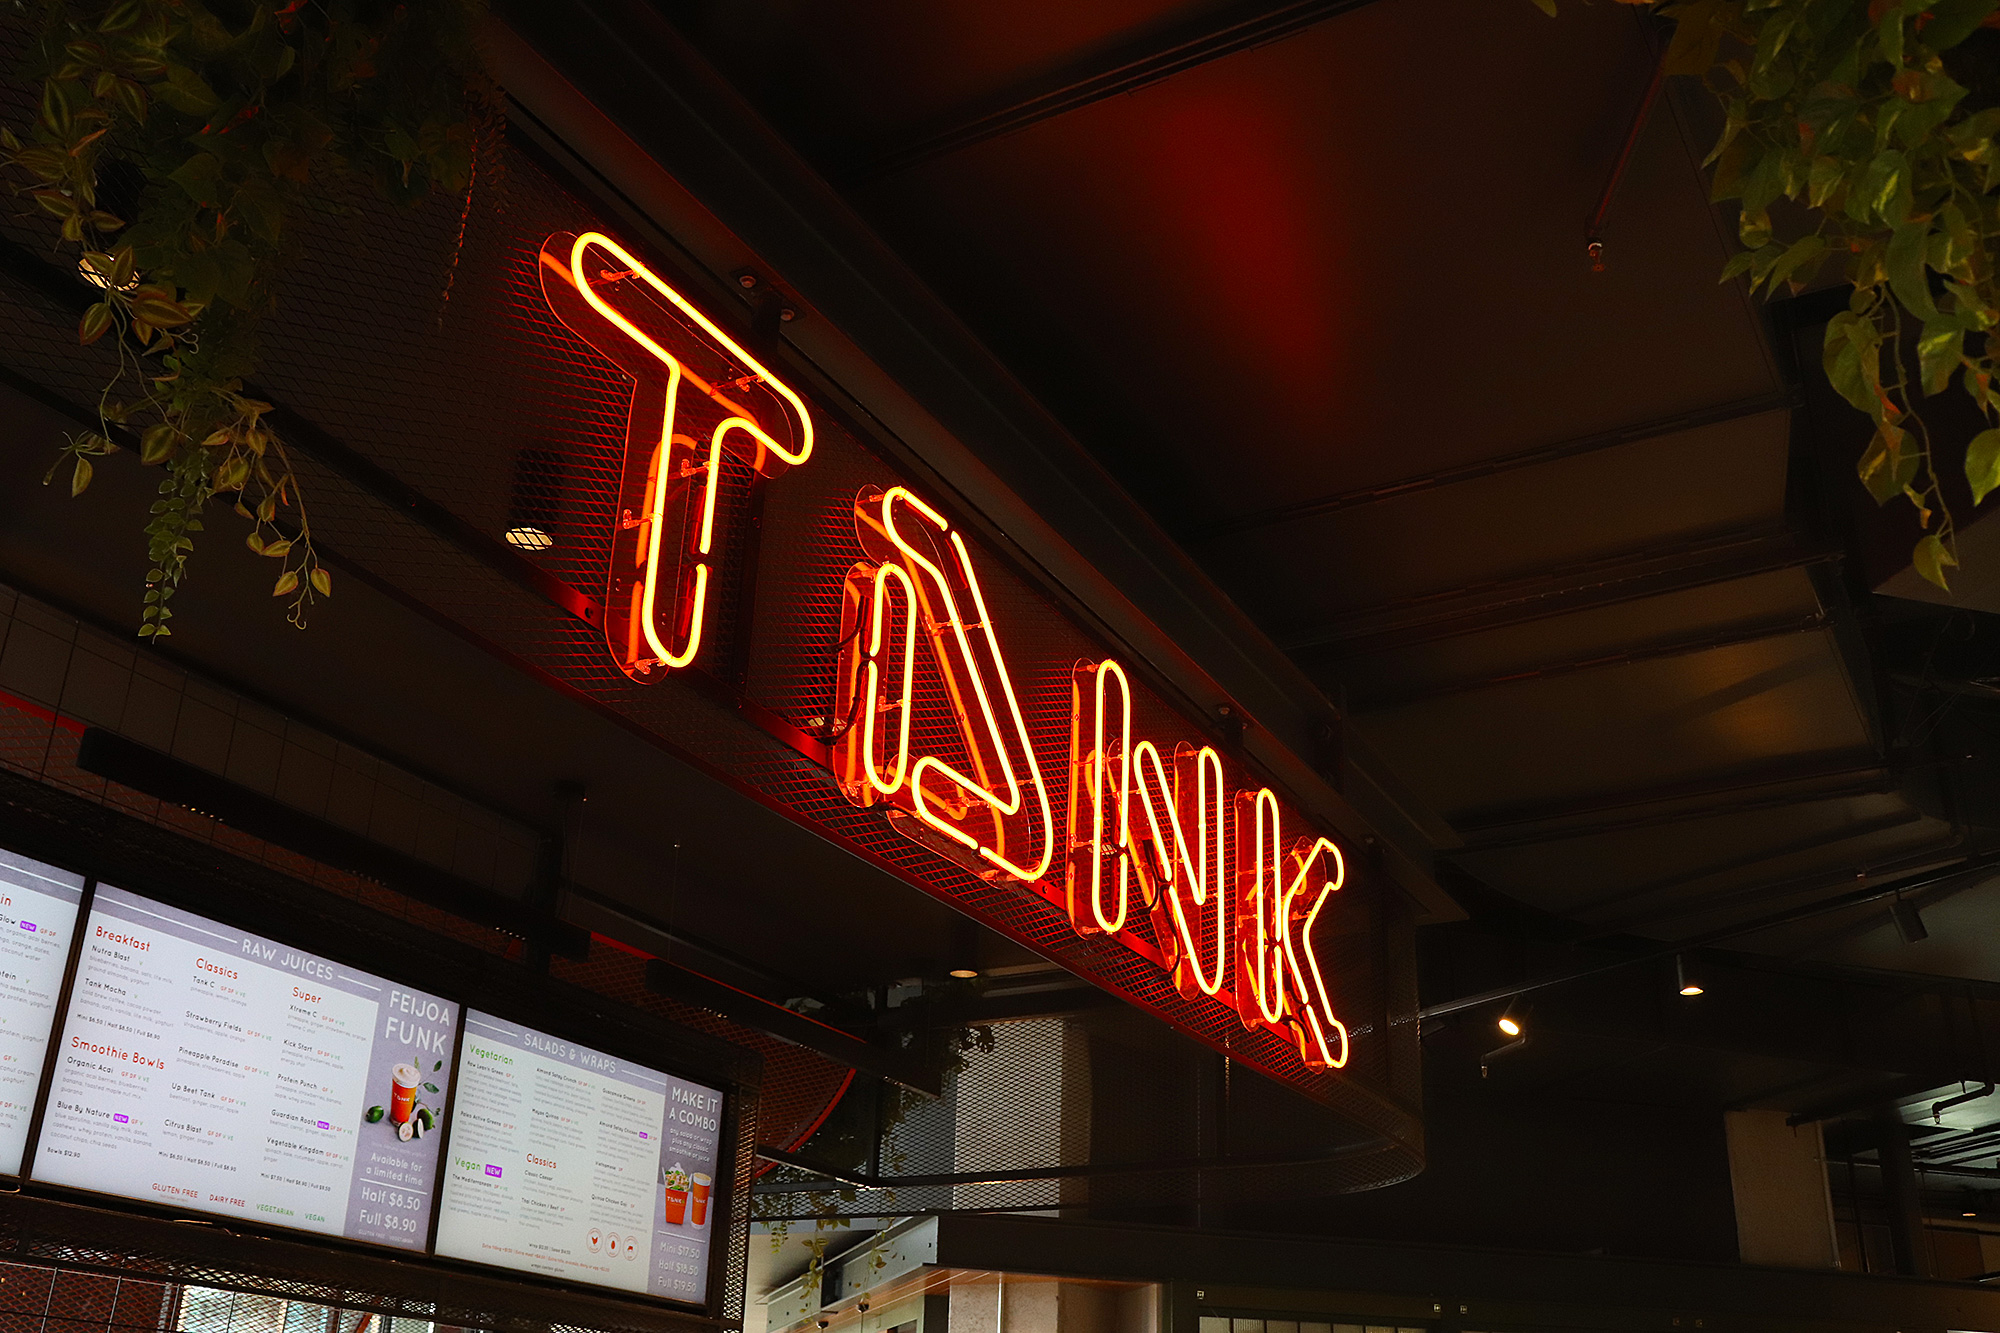 Tank Juice at Newmarket 277 in Neon